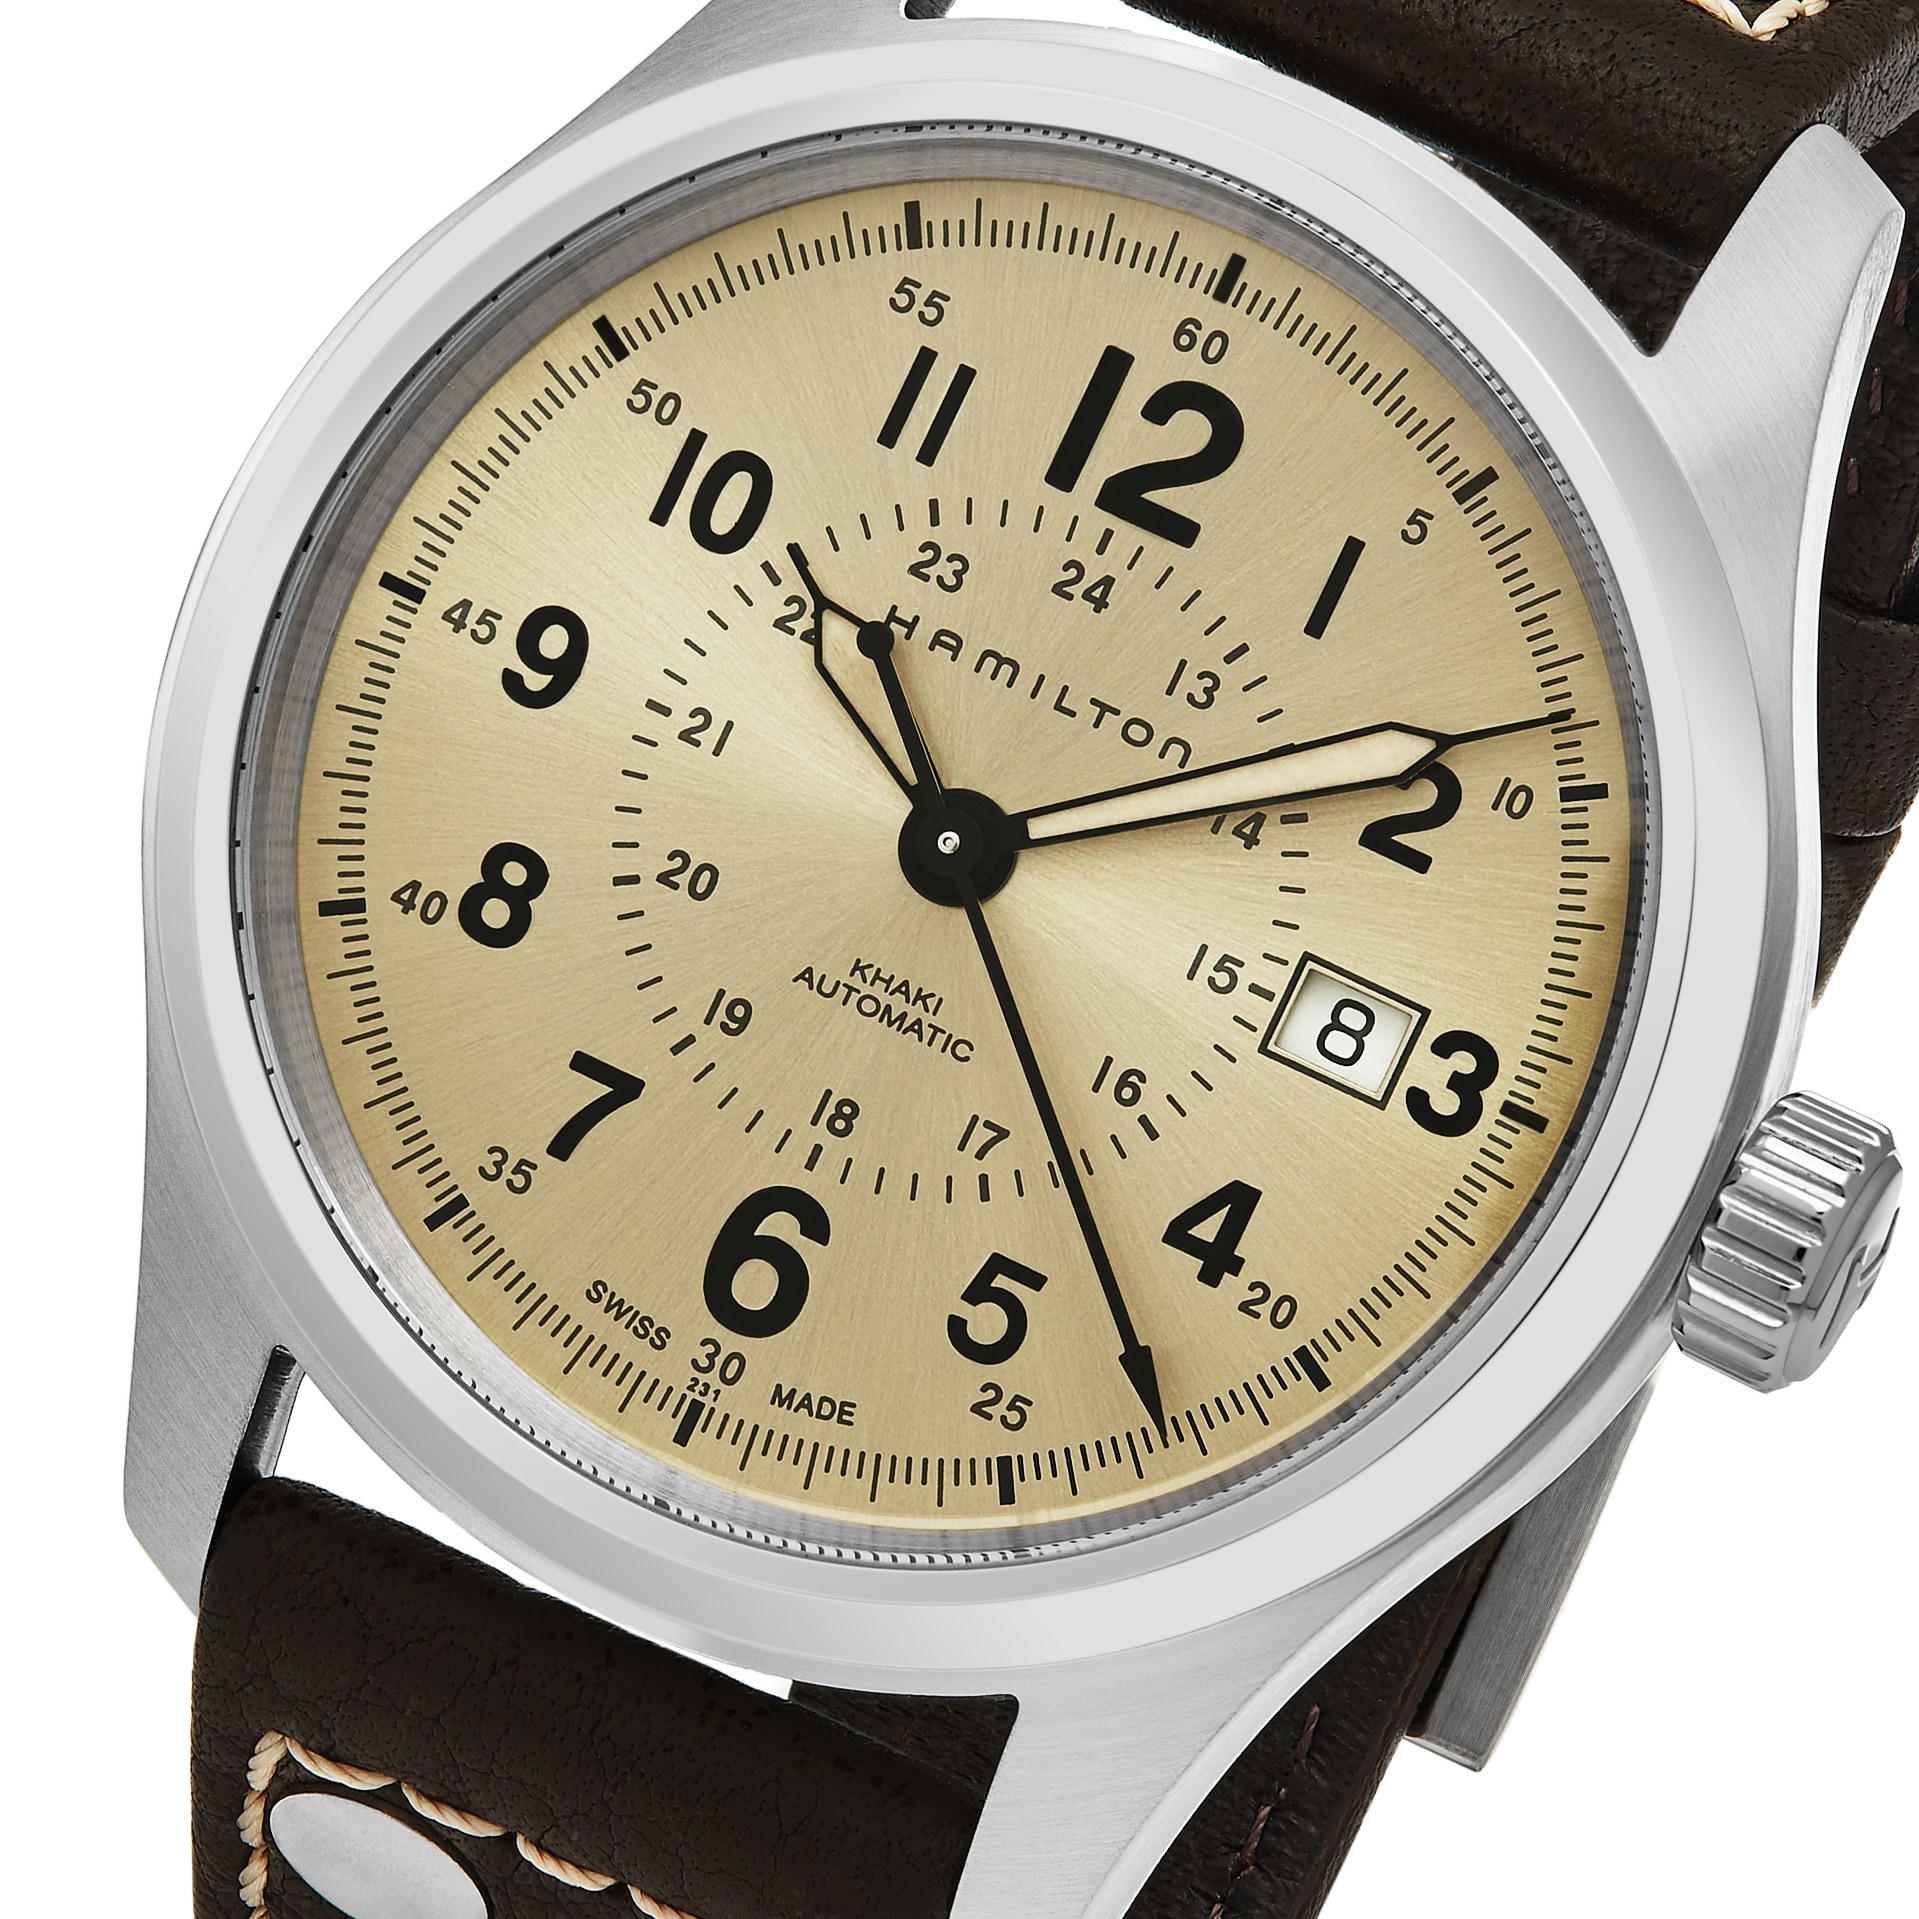 137663f4122 Shop Hamilton Men s  Khaki Field  Beige Dial Brown Leather Strap Swiss Automatic  Watch - Free Shipping Today - Overstock - 14063346